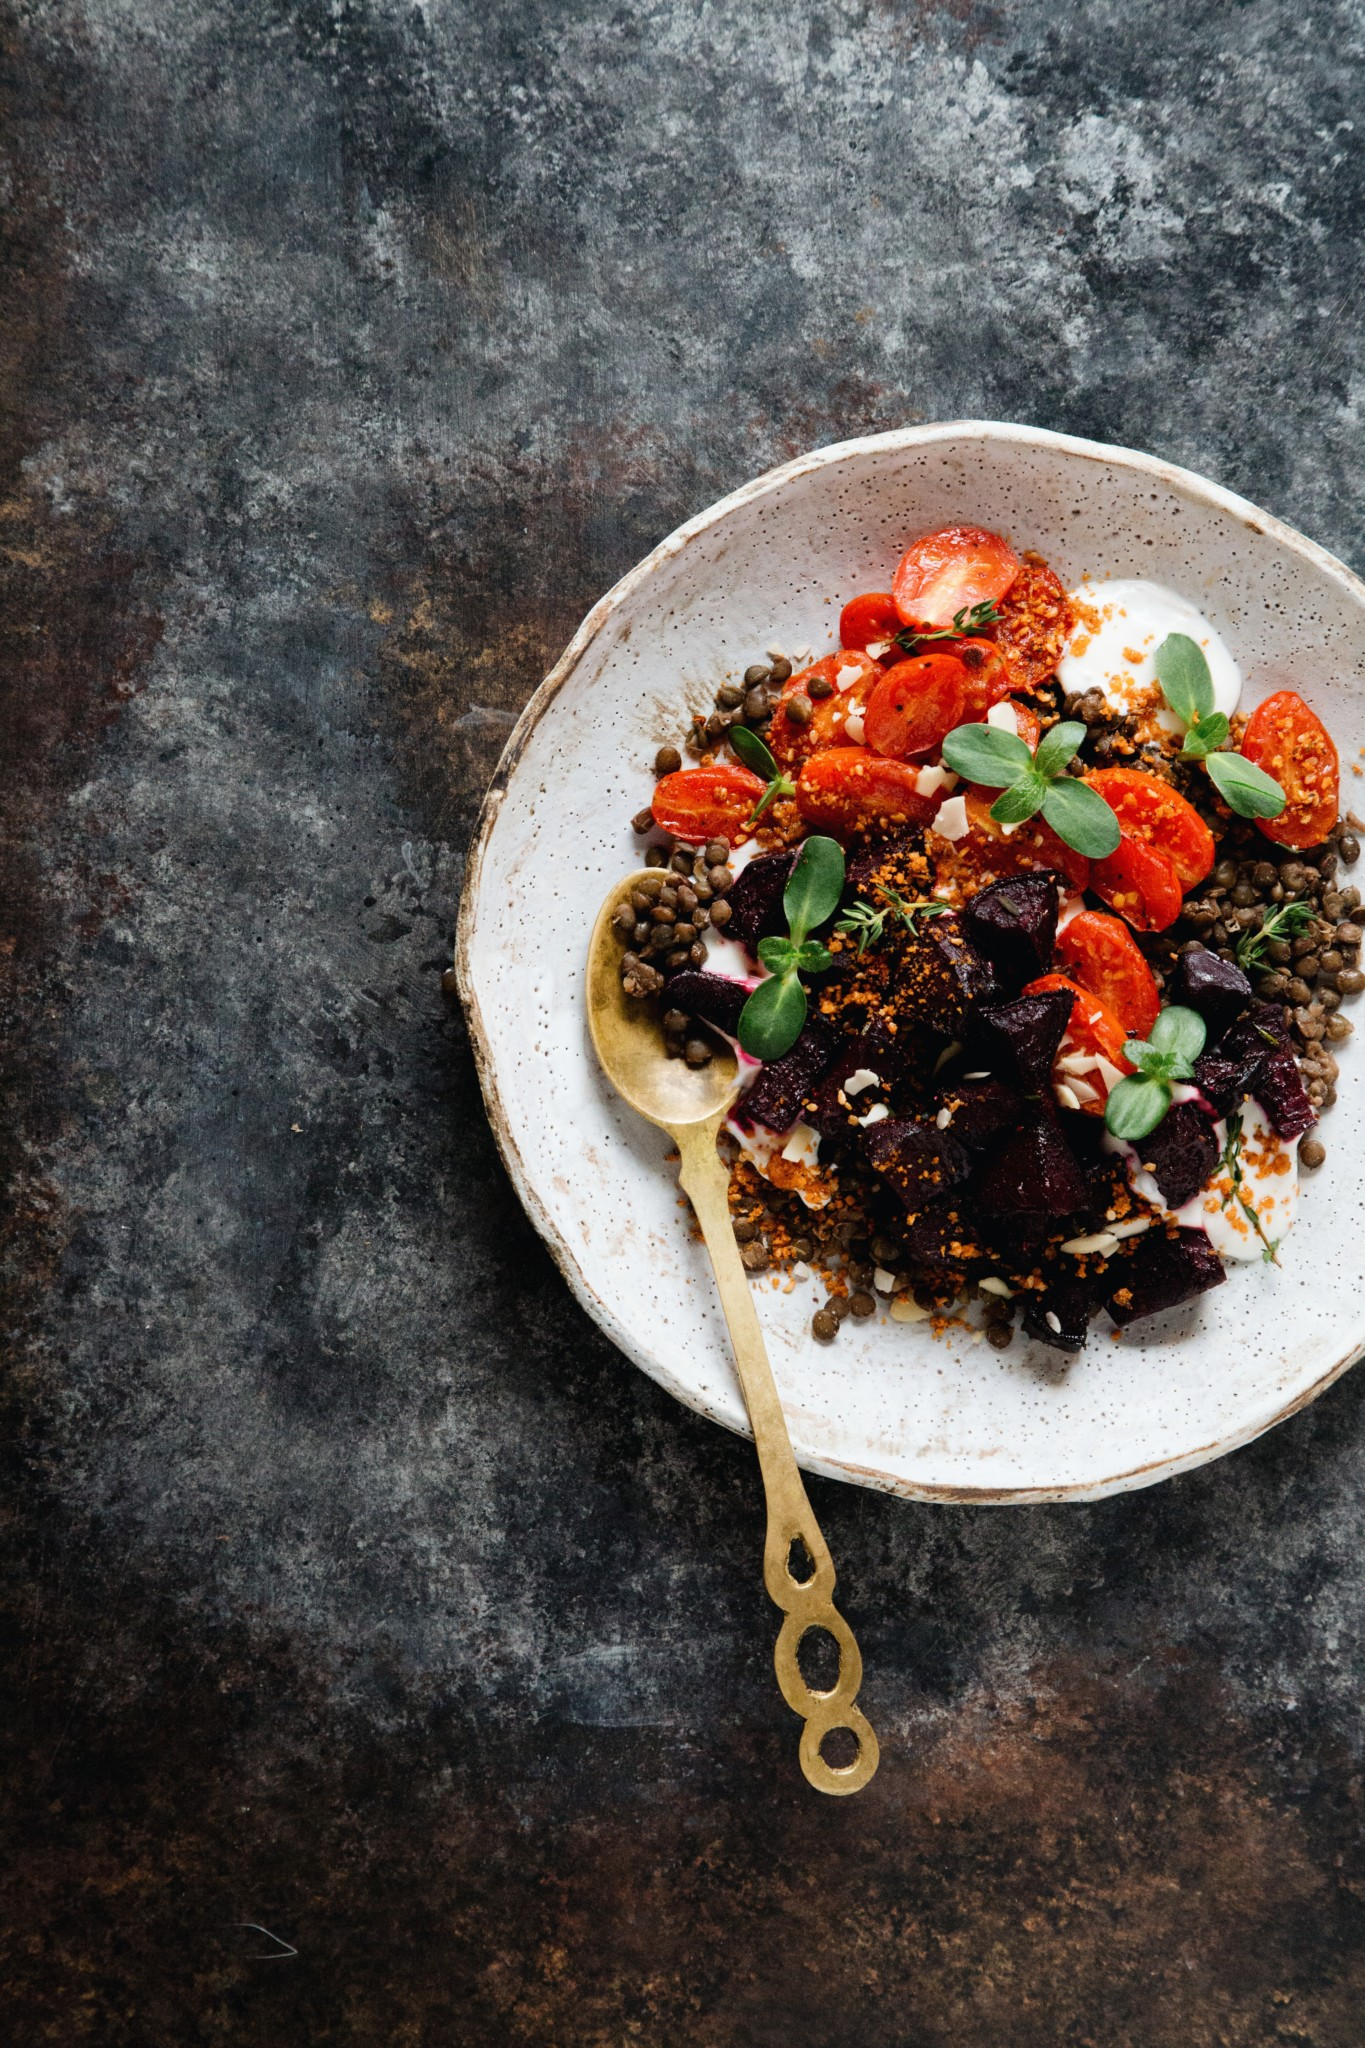 THE FOOD GAYS - Roasted Beet and Tomato with Lentils and Yogurt